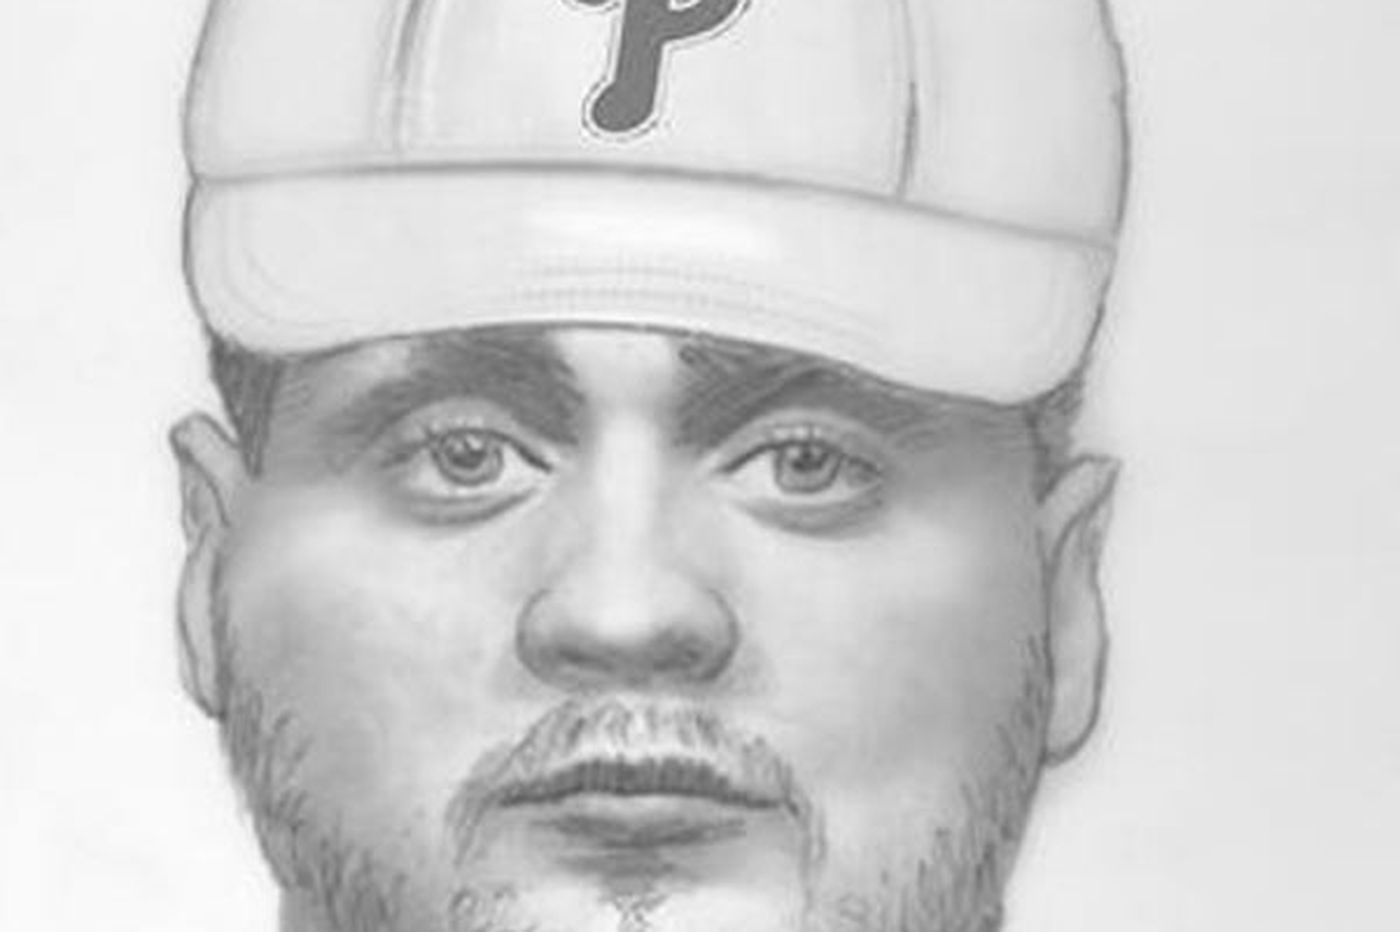 Phila. police releases sketch of man wanted in Port Richmond robbery/sexual assault